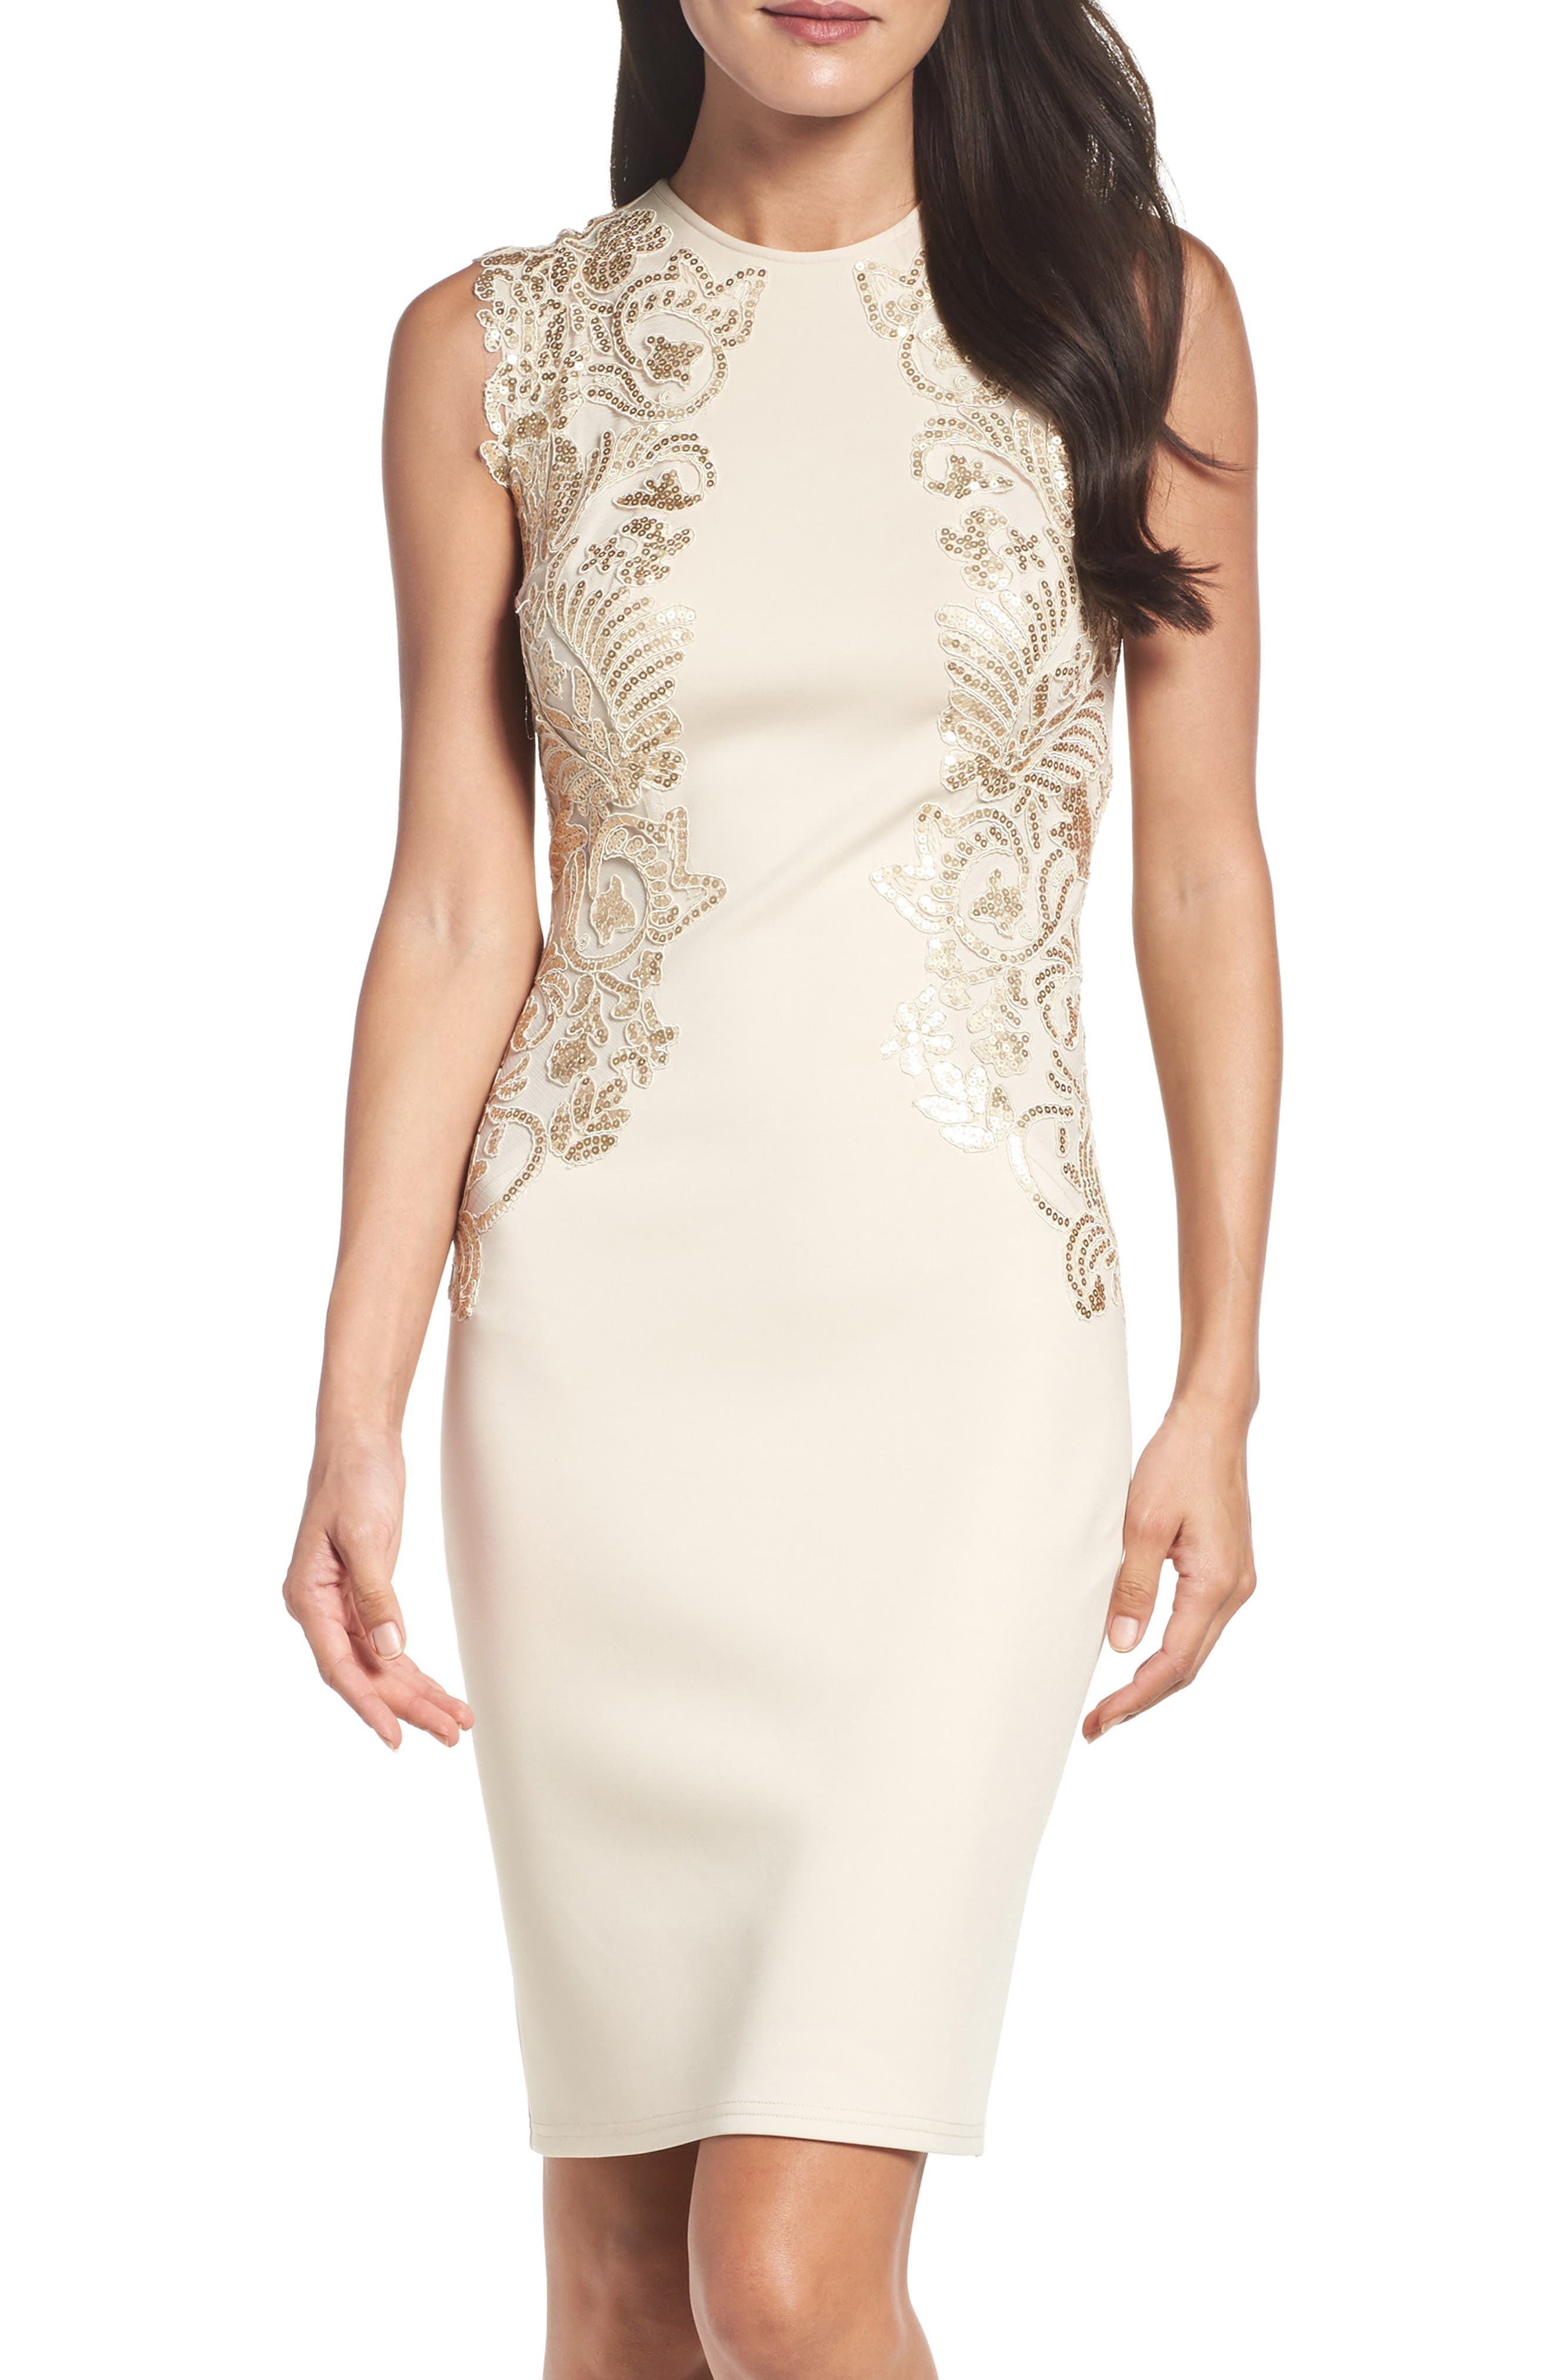 Alternate Image 1 Selected - Tadashi Shoji Sequin Appliqué Neoprene Sheath Dress